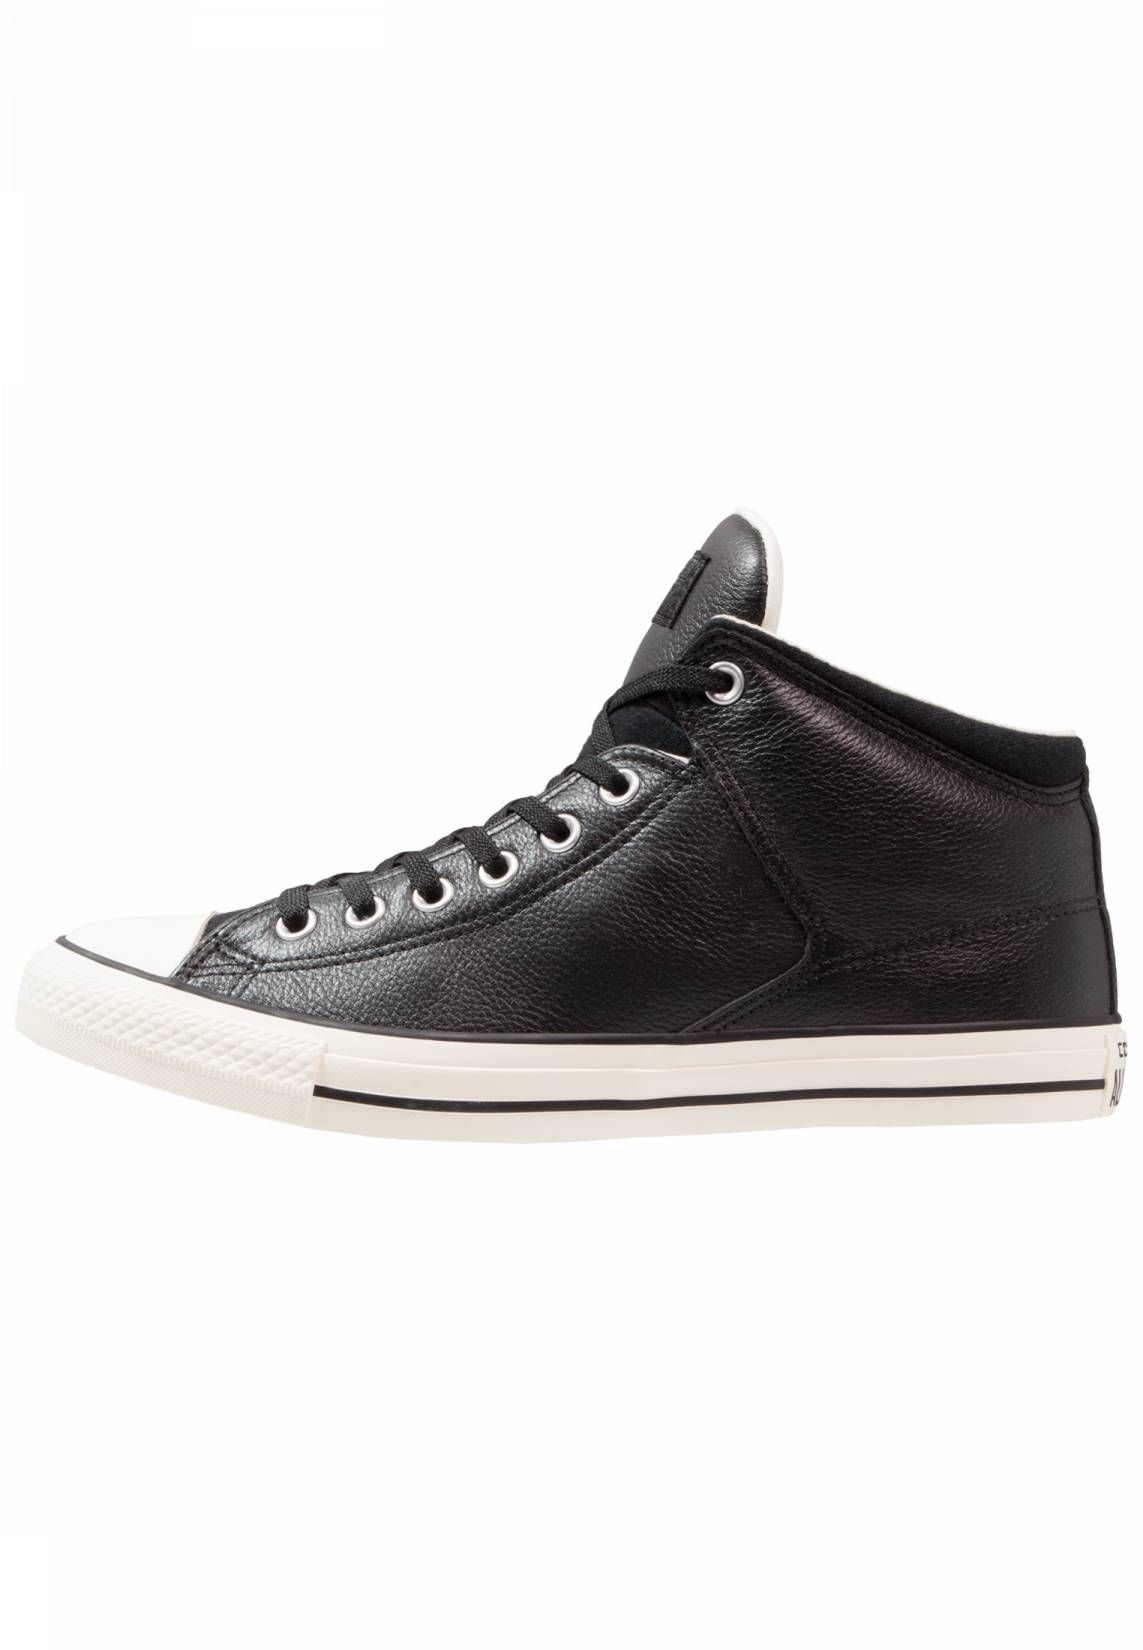 Converse. CHUCK TAYLOR ALL STAR HIGH STREET TUMBLED LEATHER - HI - Zapatillas  altas - a64fb7ec16b